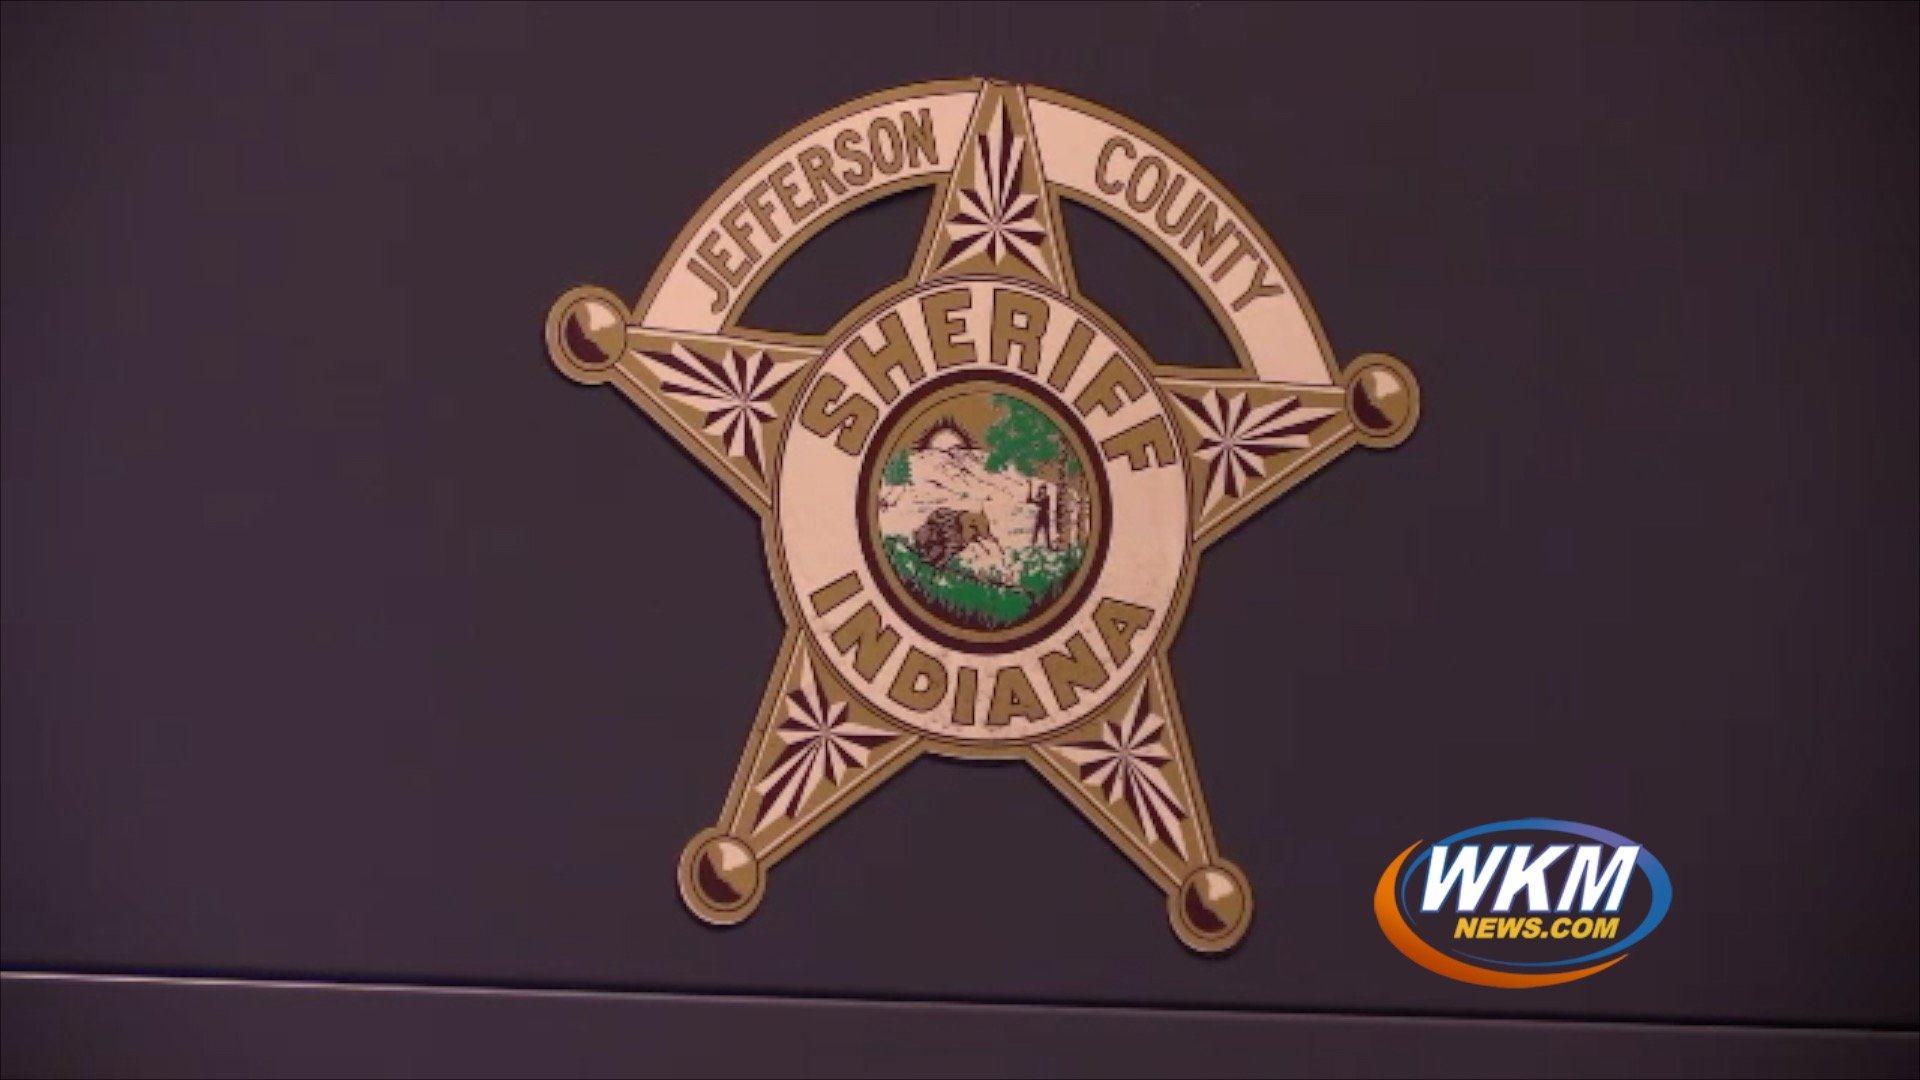 Jefferson County Sheriff's Department Discusses Mandatory Body Cameras